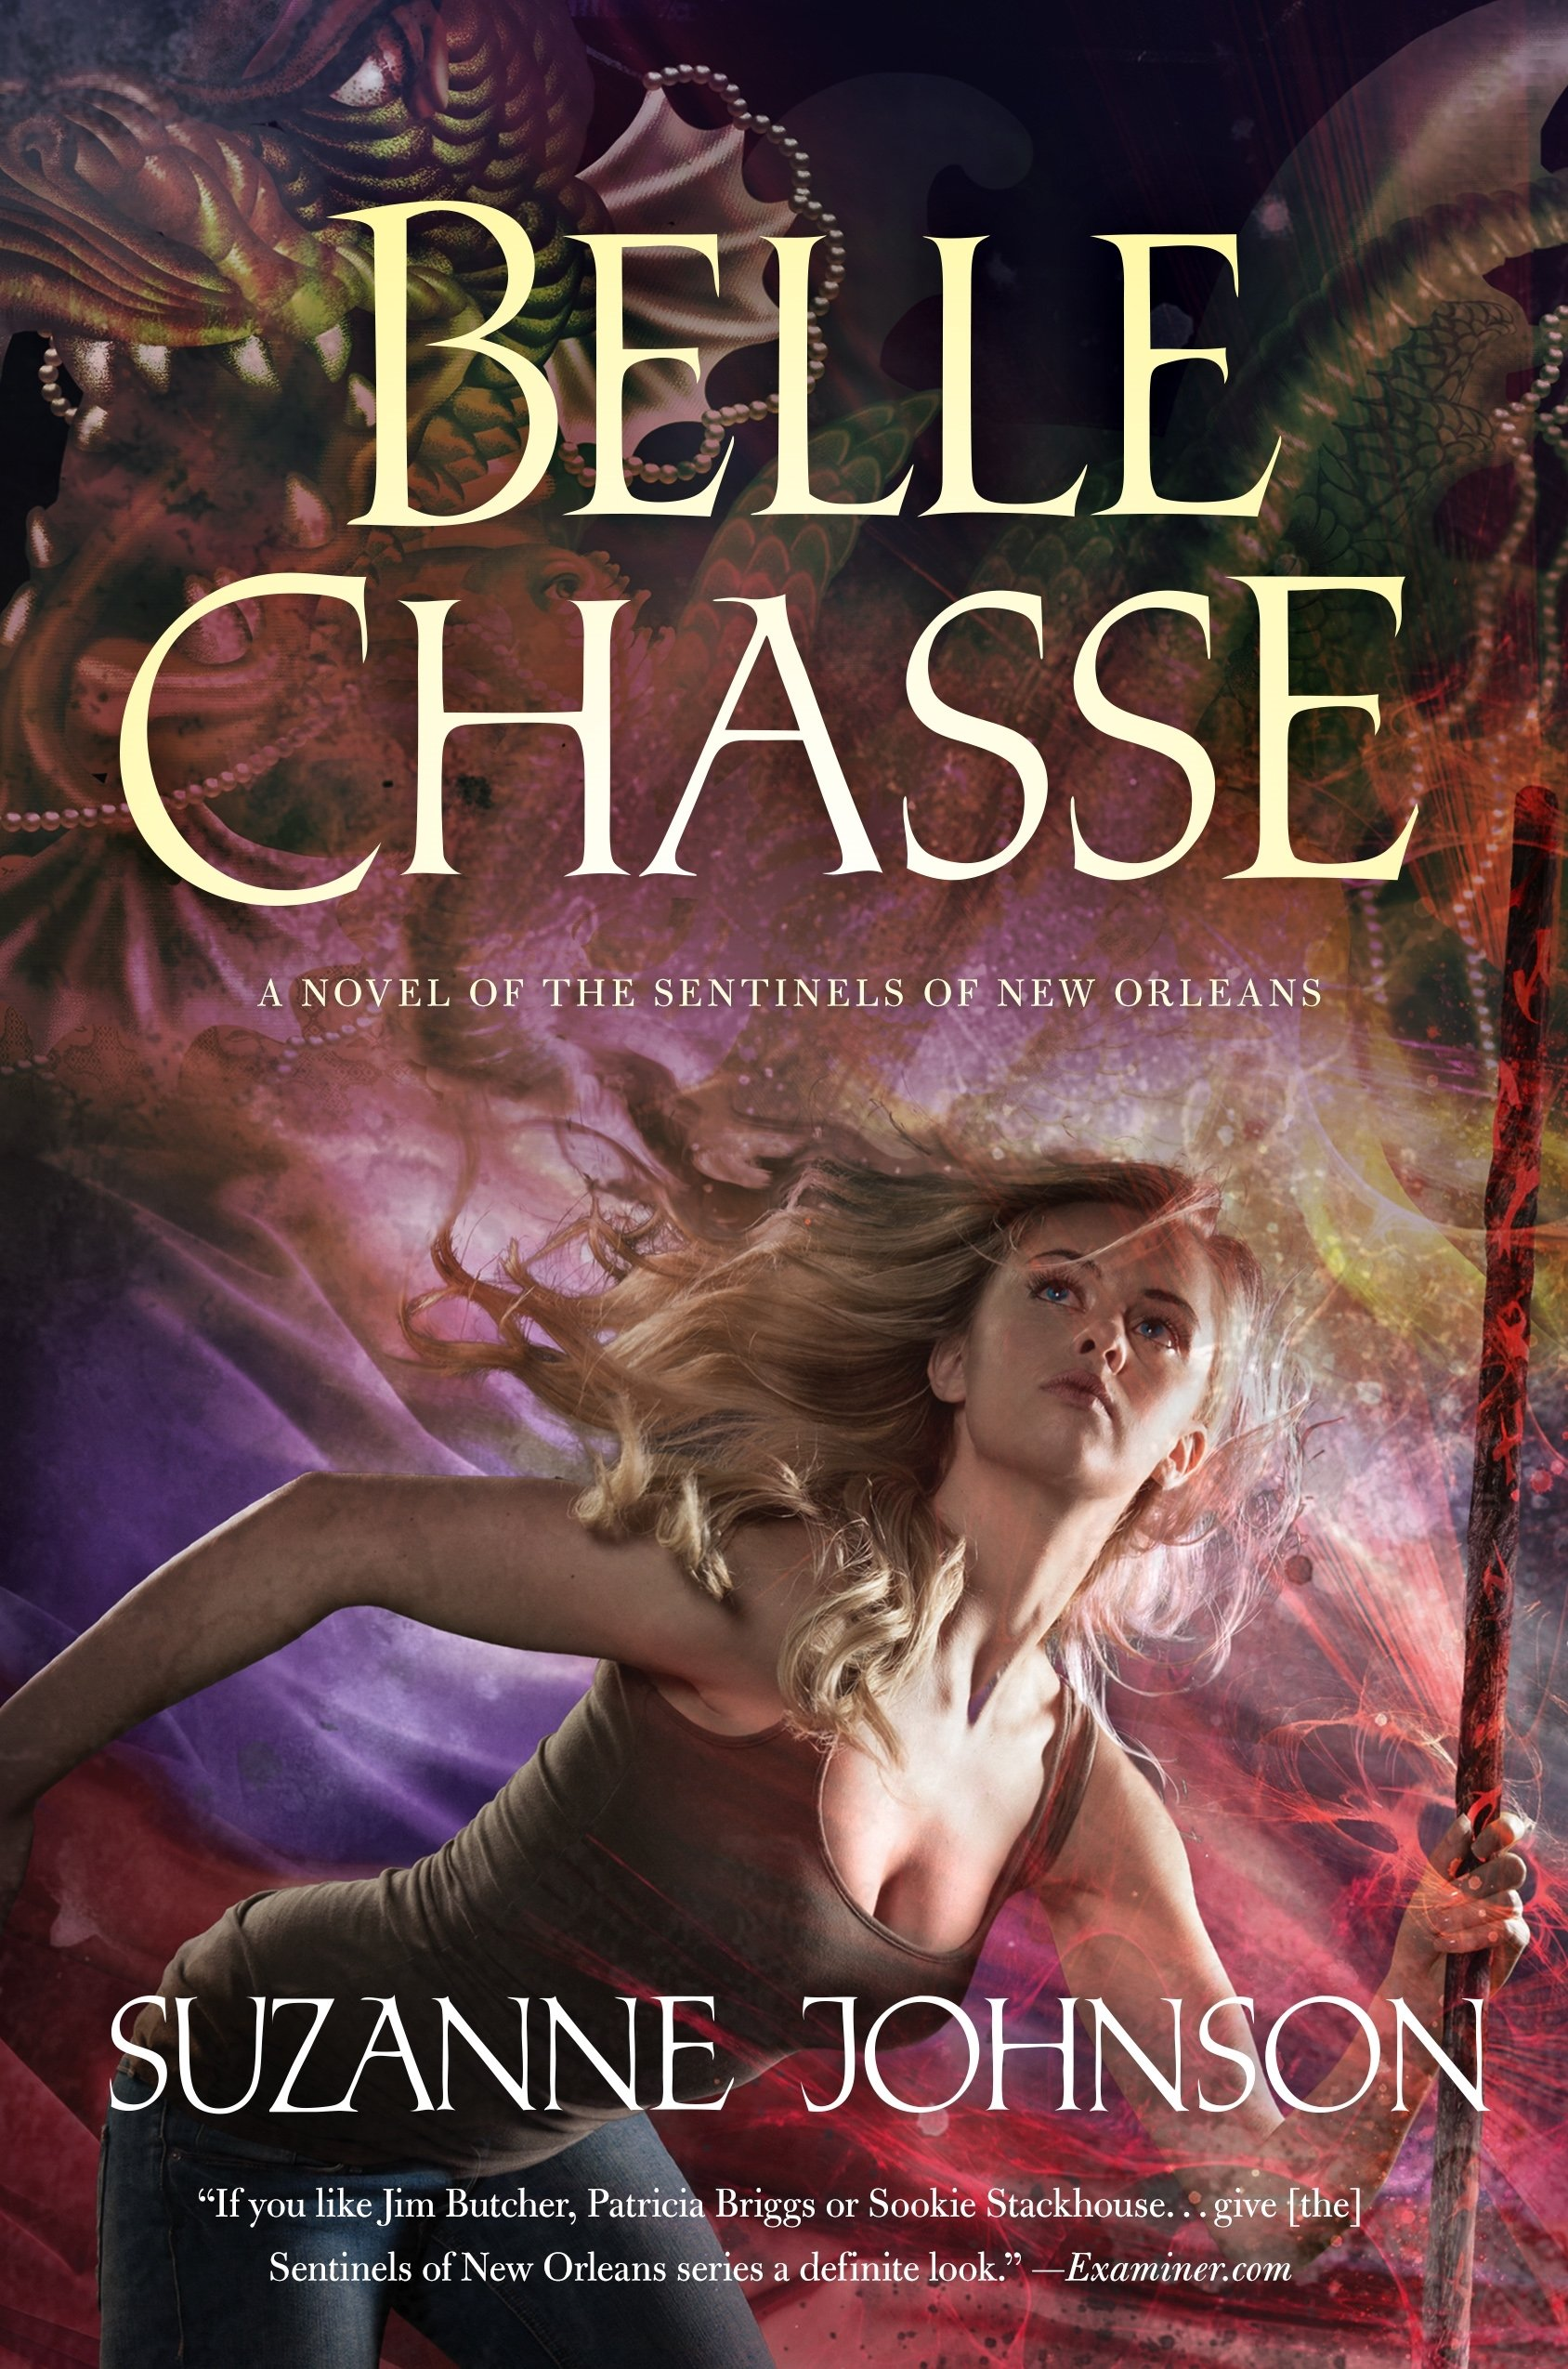 Belle Chasse: A Novel of The Sentinels of New Orleans: Suzanne Johnson:  9780765376992: Amazon.com: Books